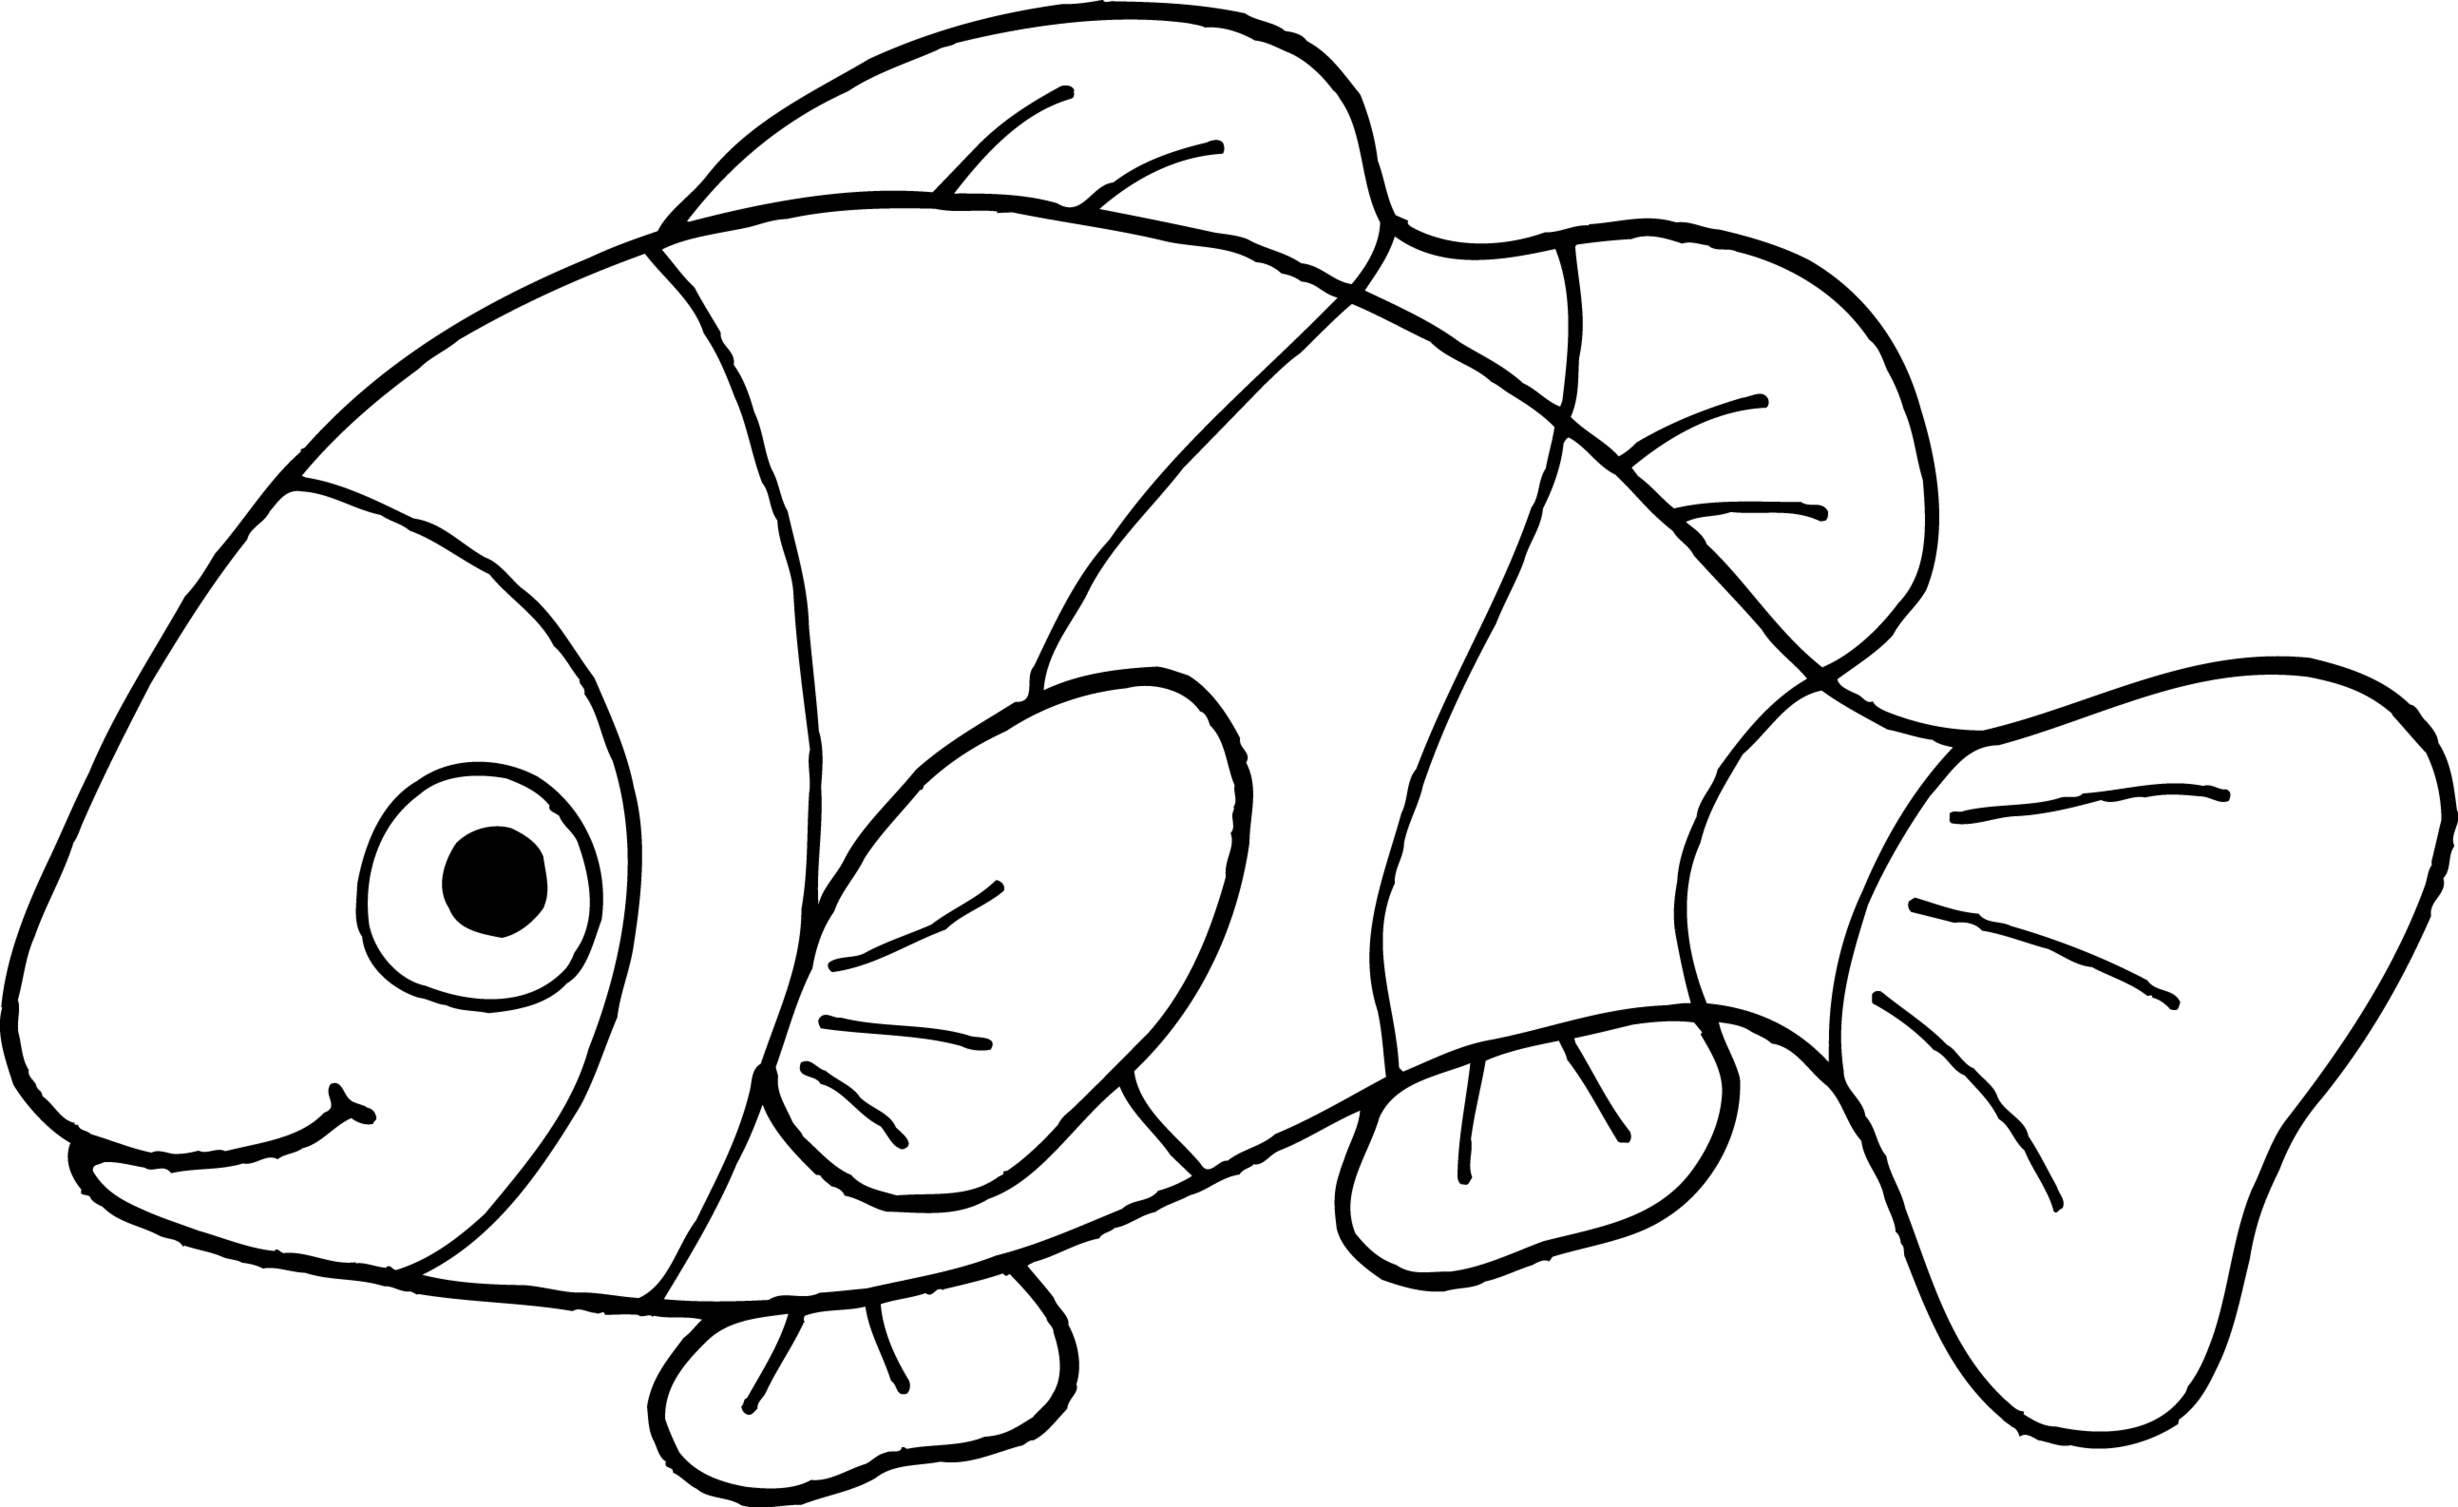 how to draw a clownfish clown fish cartoon drawing to how draw clownfish a